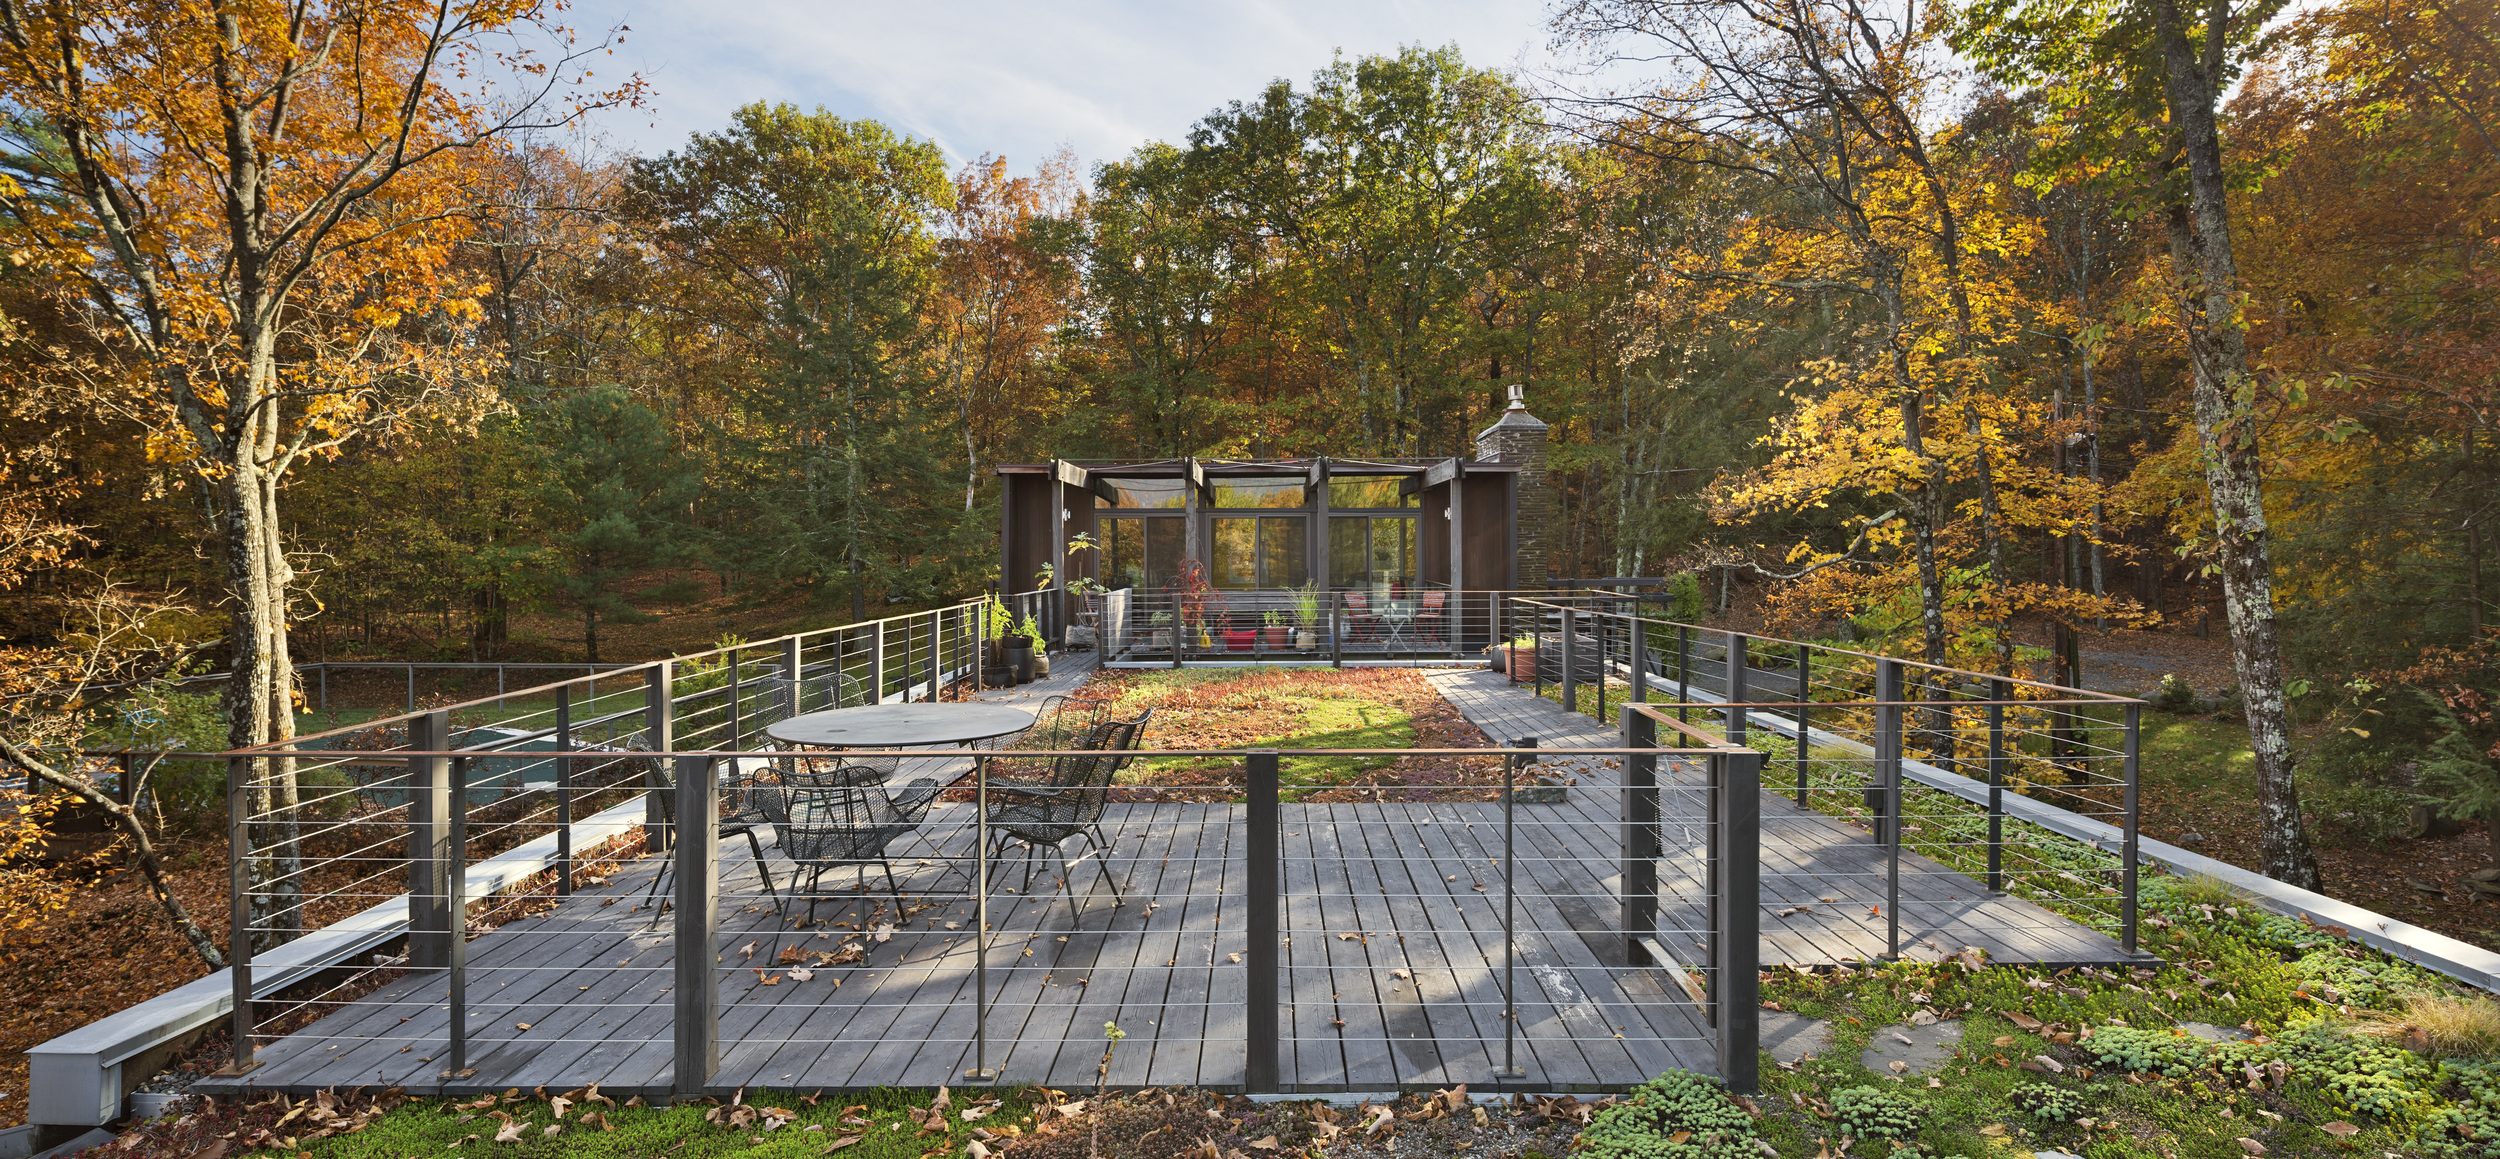 The site on the north face of a steep hill facing the Catskills presents both magnificent views and environmental challenges. To manage the heavy rain and runoff down the slope, the studio is raised on concrete pilotis and has an extensive green roof.